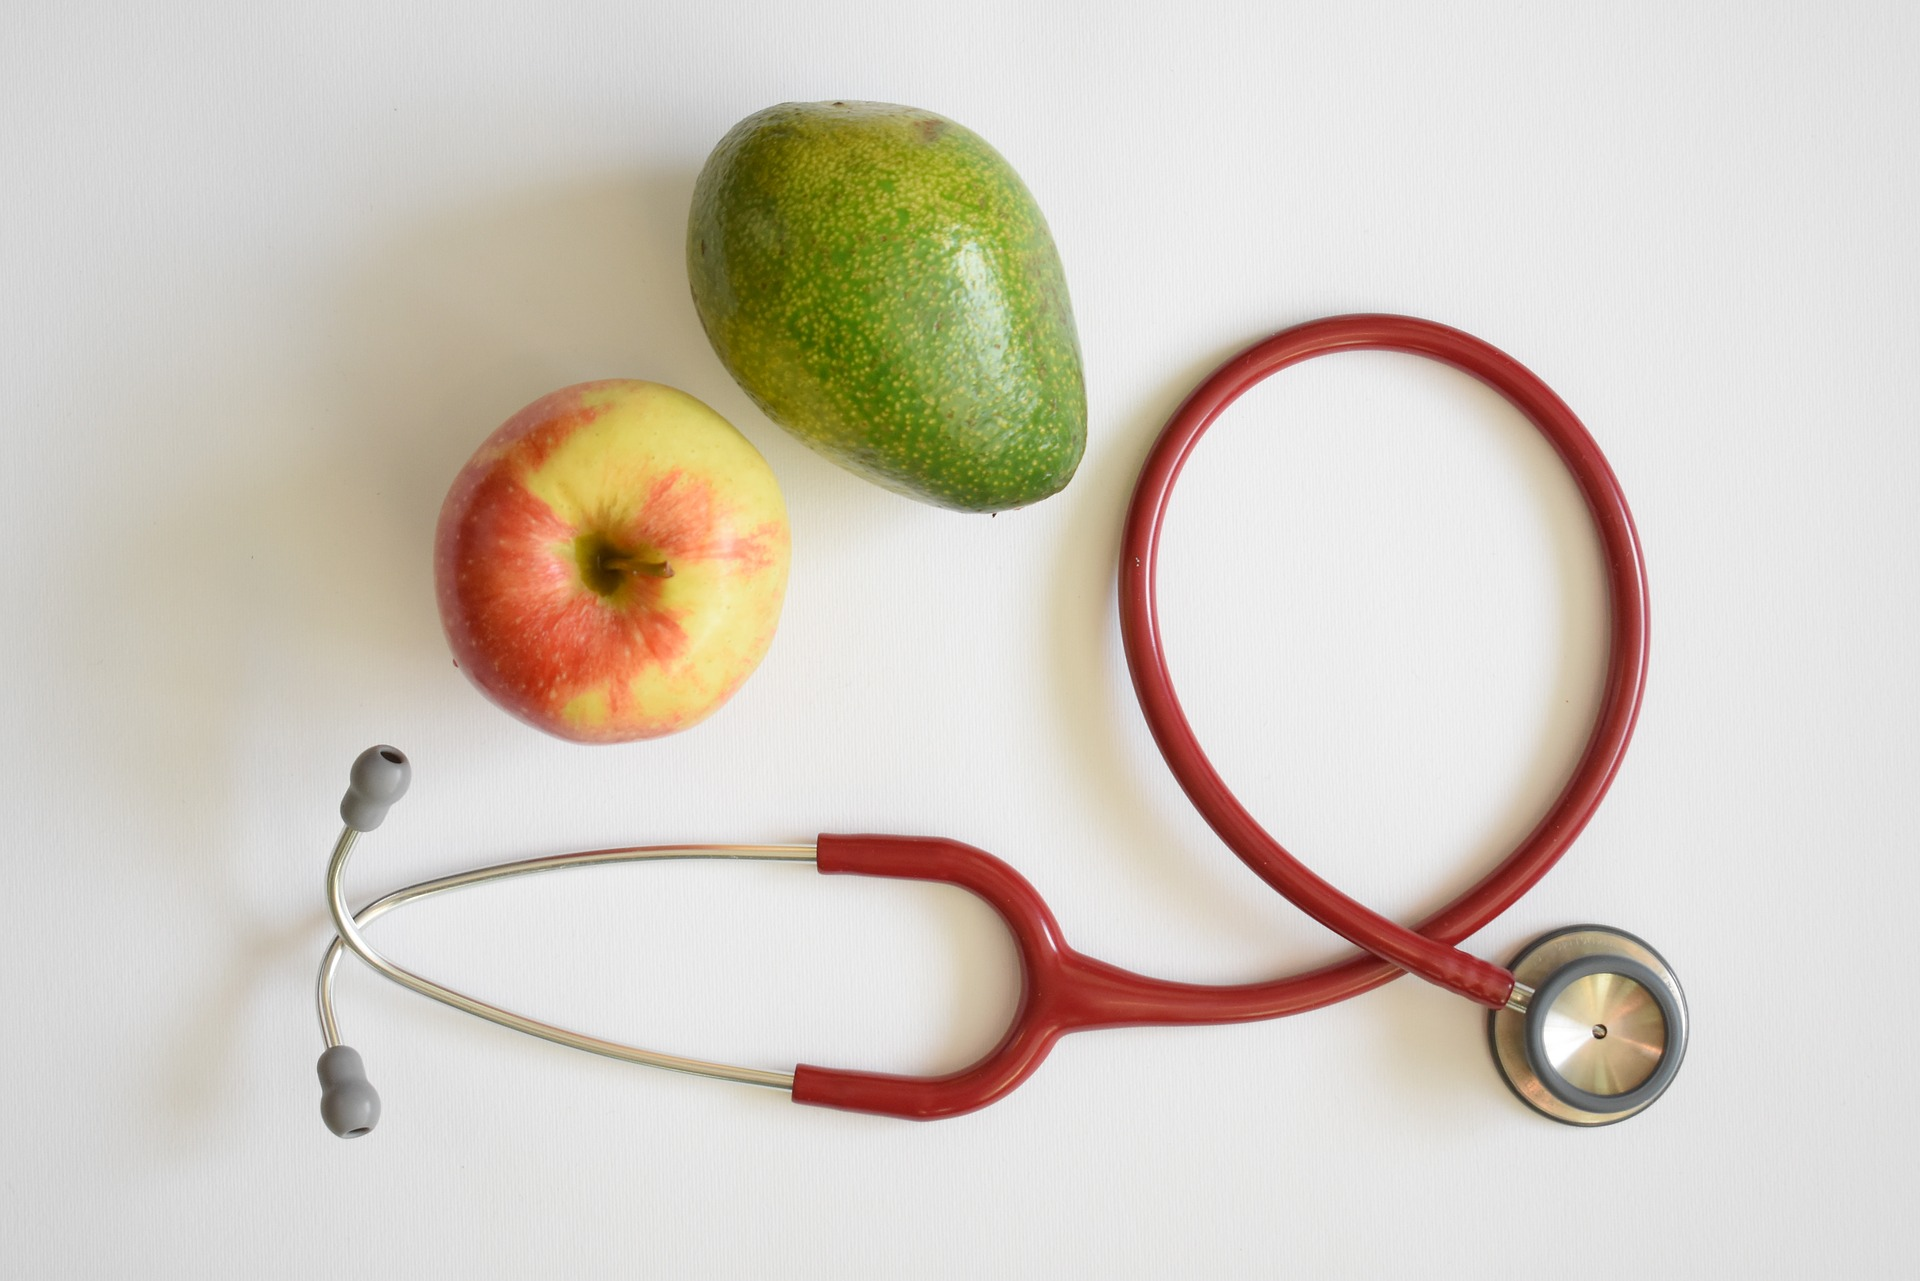 Image of stethoscope, apple, and avocado on white background.